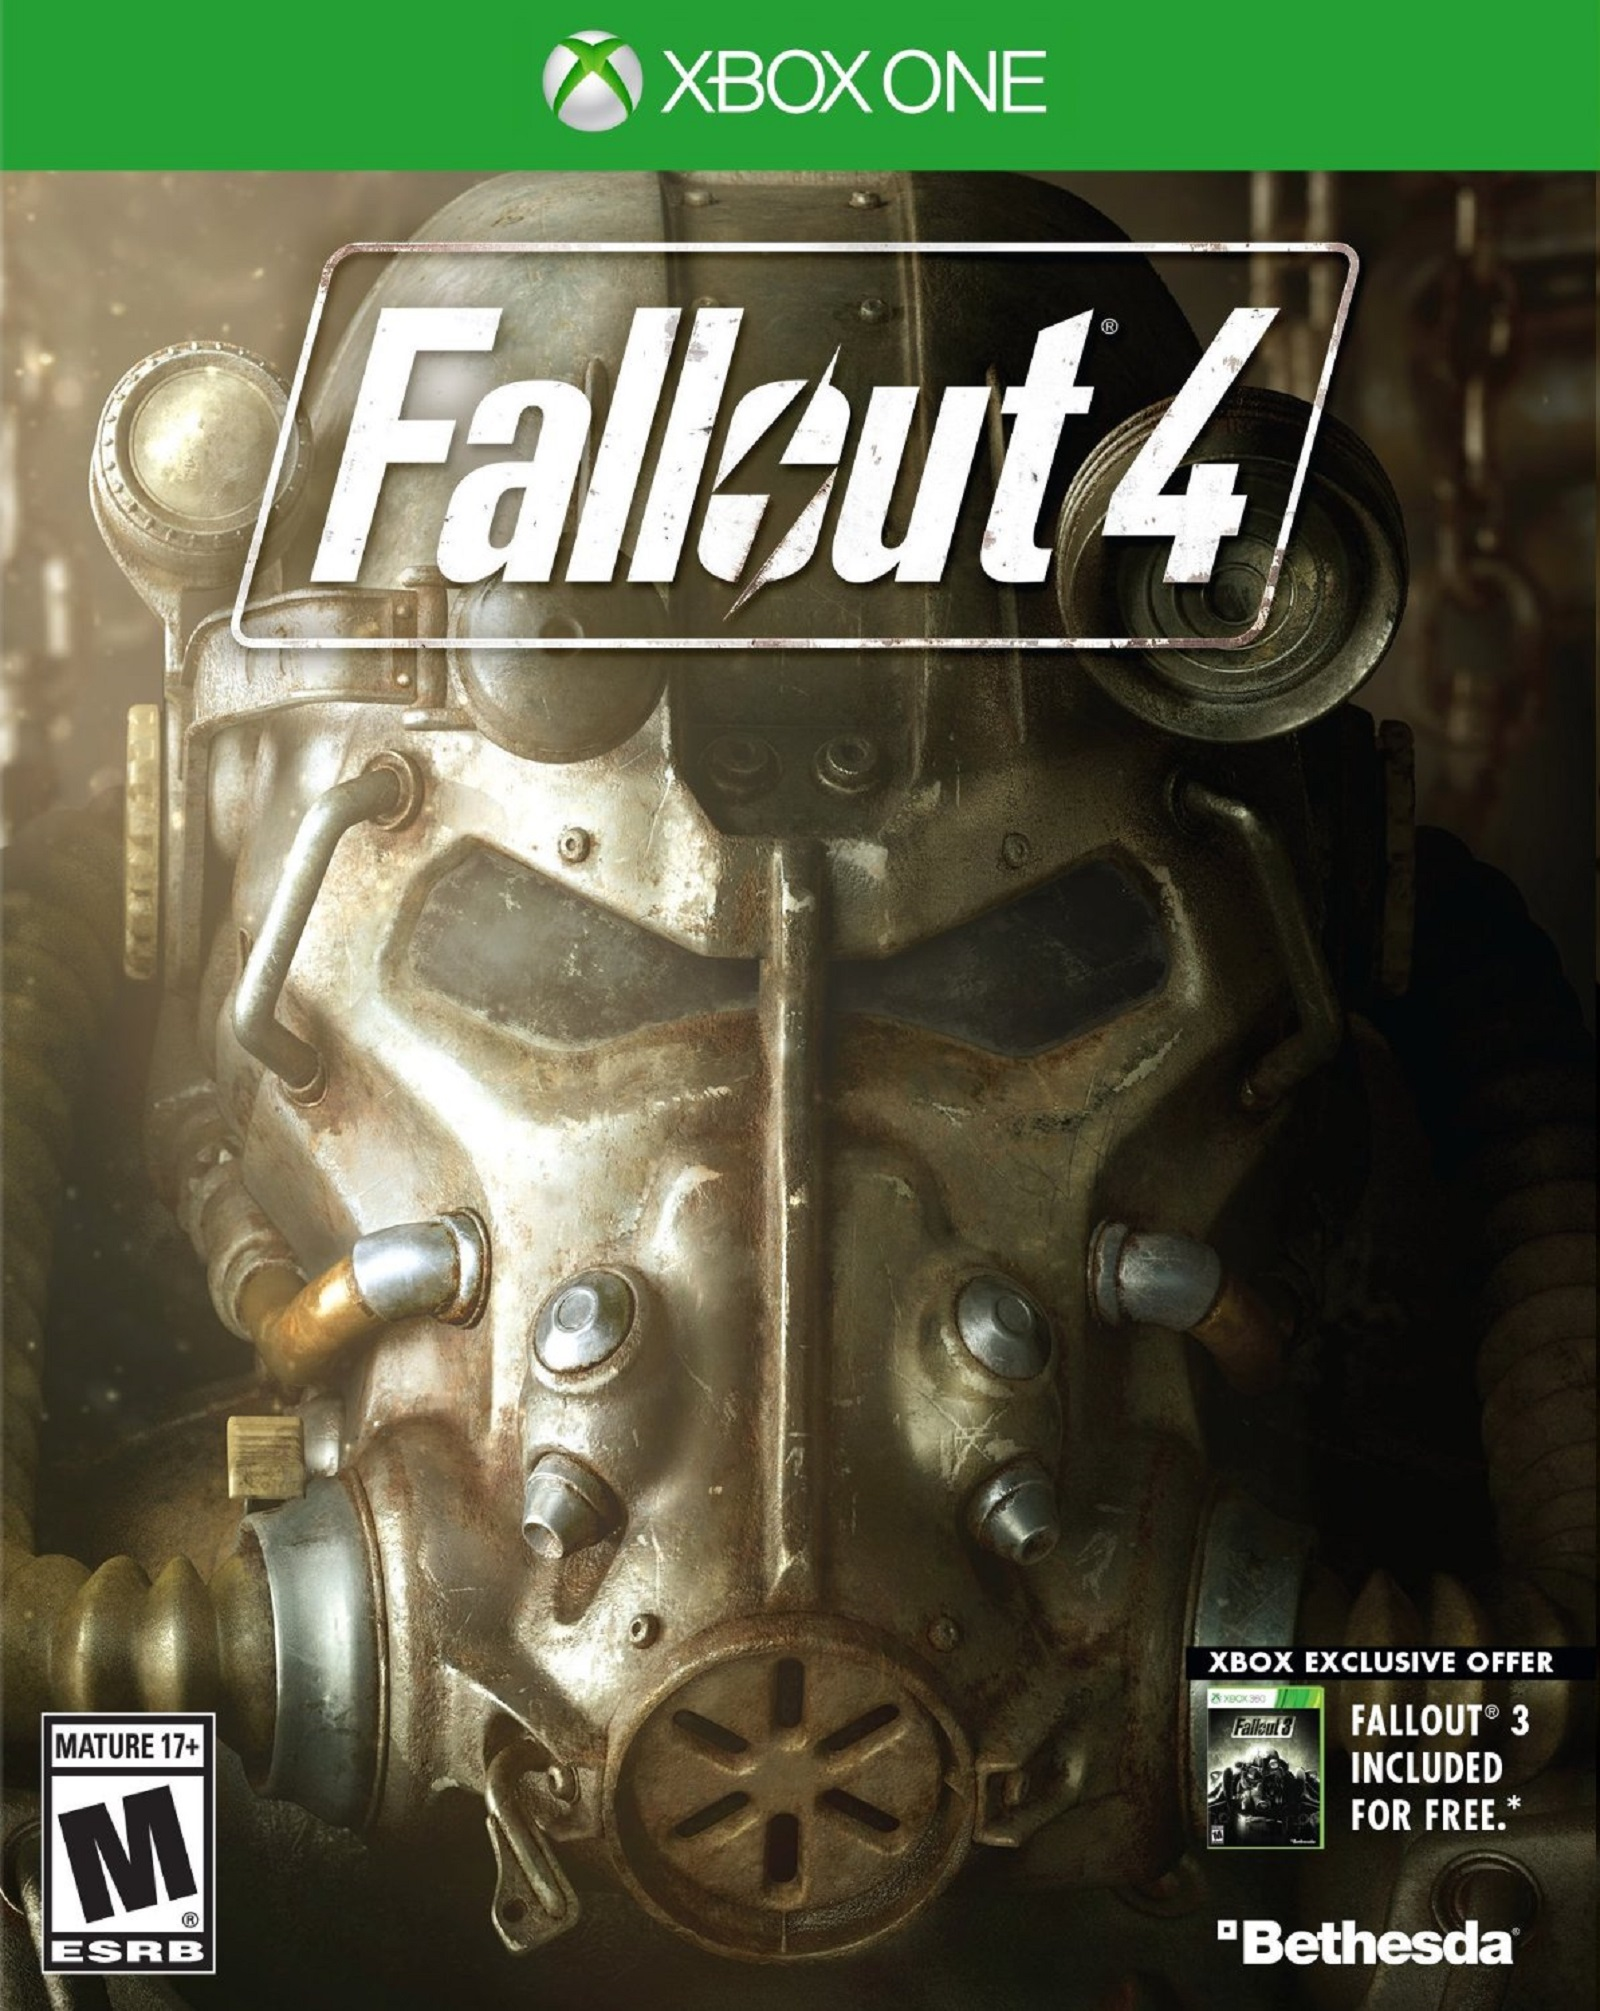 Xbox One Fallout IV USA Box Artwork Plus Fallout 3 M for Mature